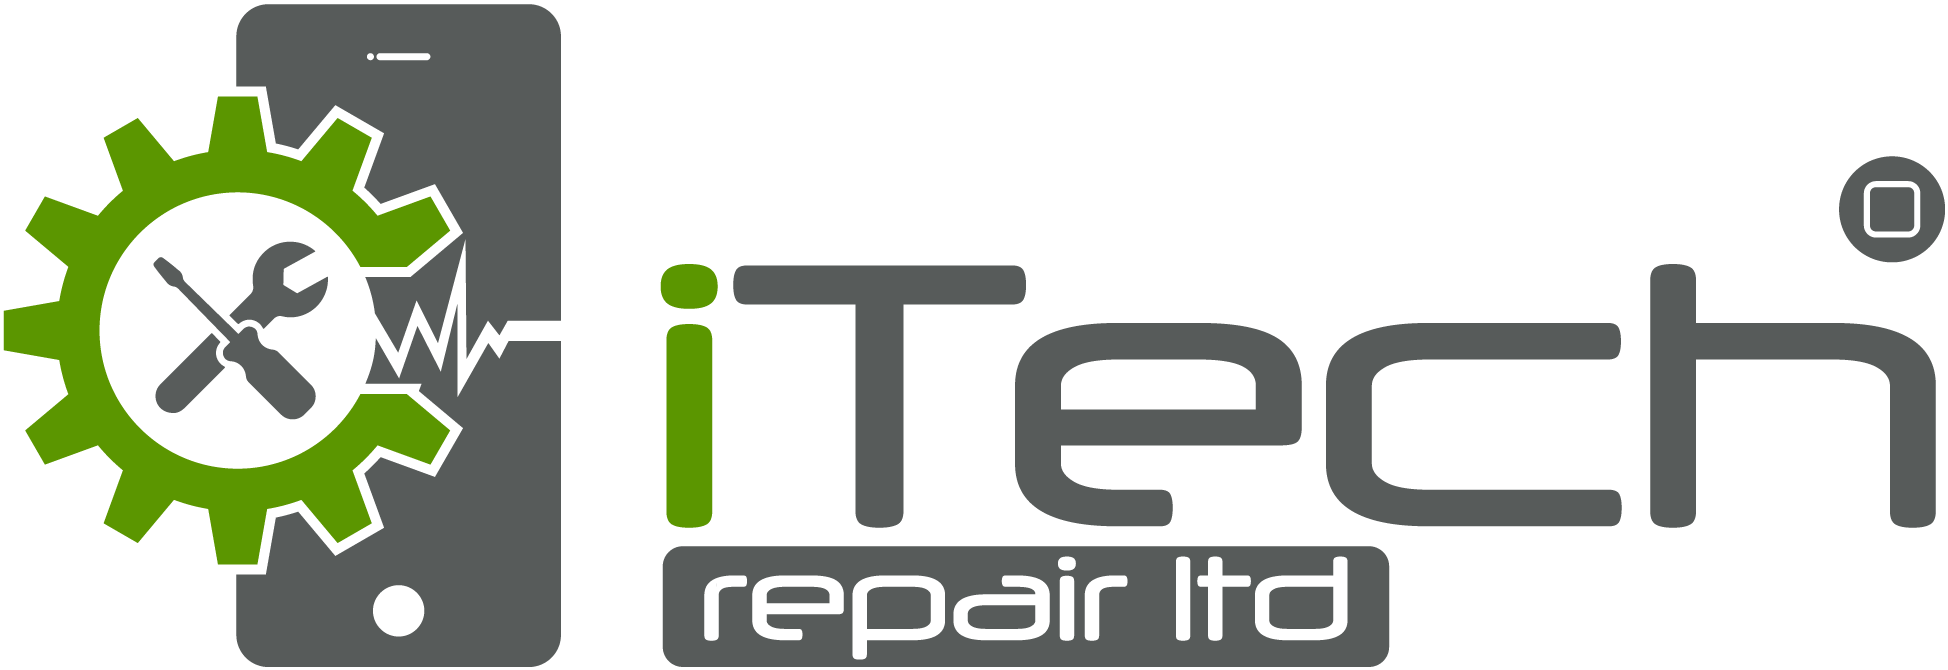 Fast iPhone, iPad, iPod, Repairs in the UK Provided iPAQ Repair & Parts